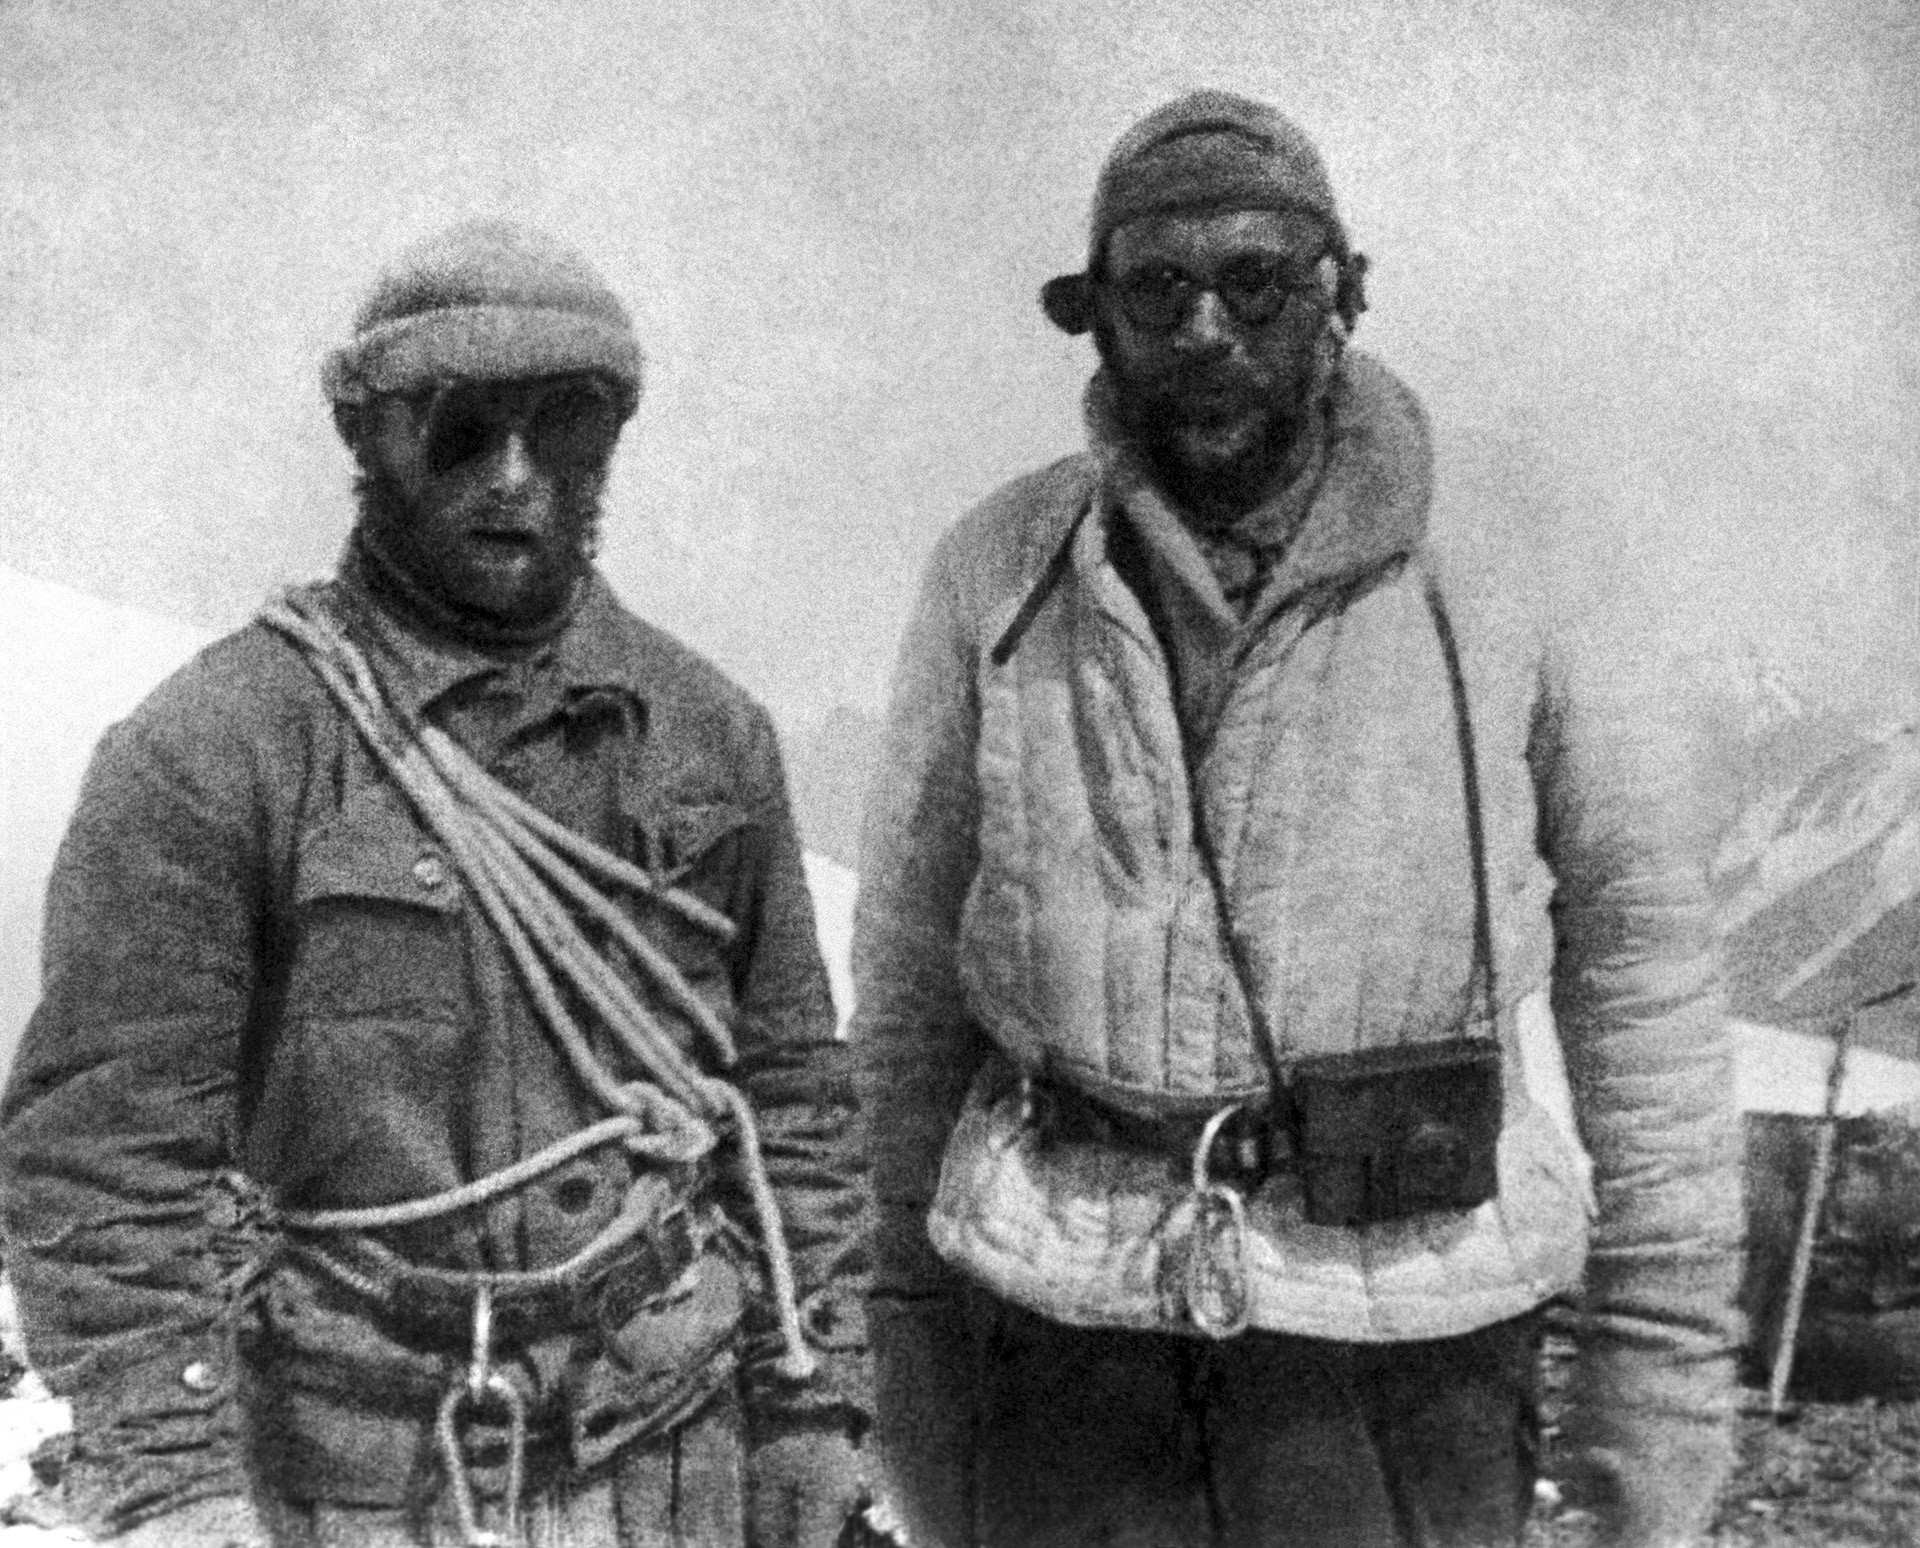 Eugene Abalakov (left) and Nikolay Gorbunov (right), members of the Squad No. 29 which began a journey to climb Stalin Peak in August 1933.